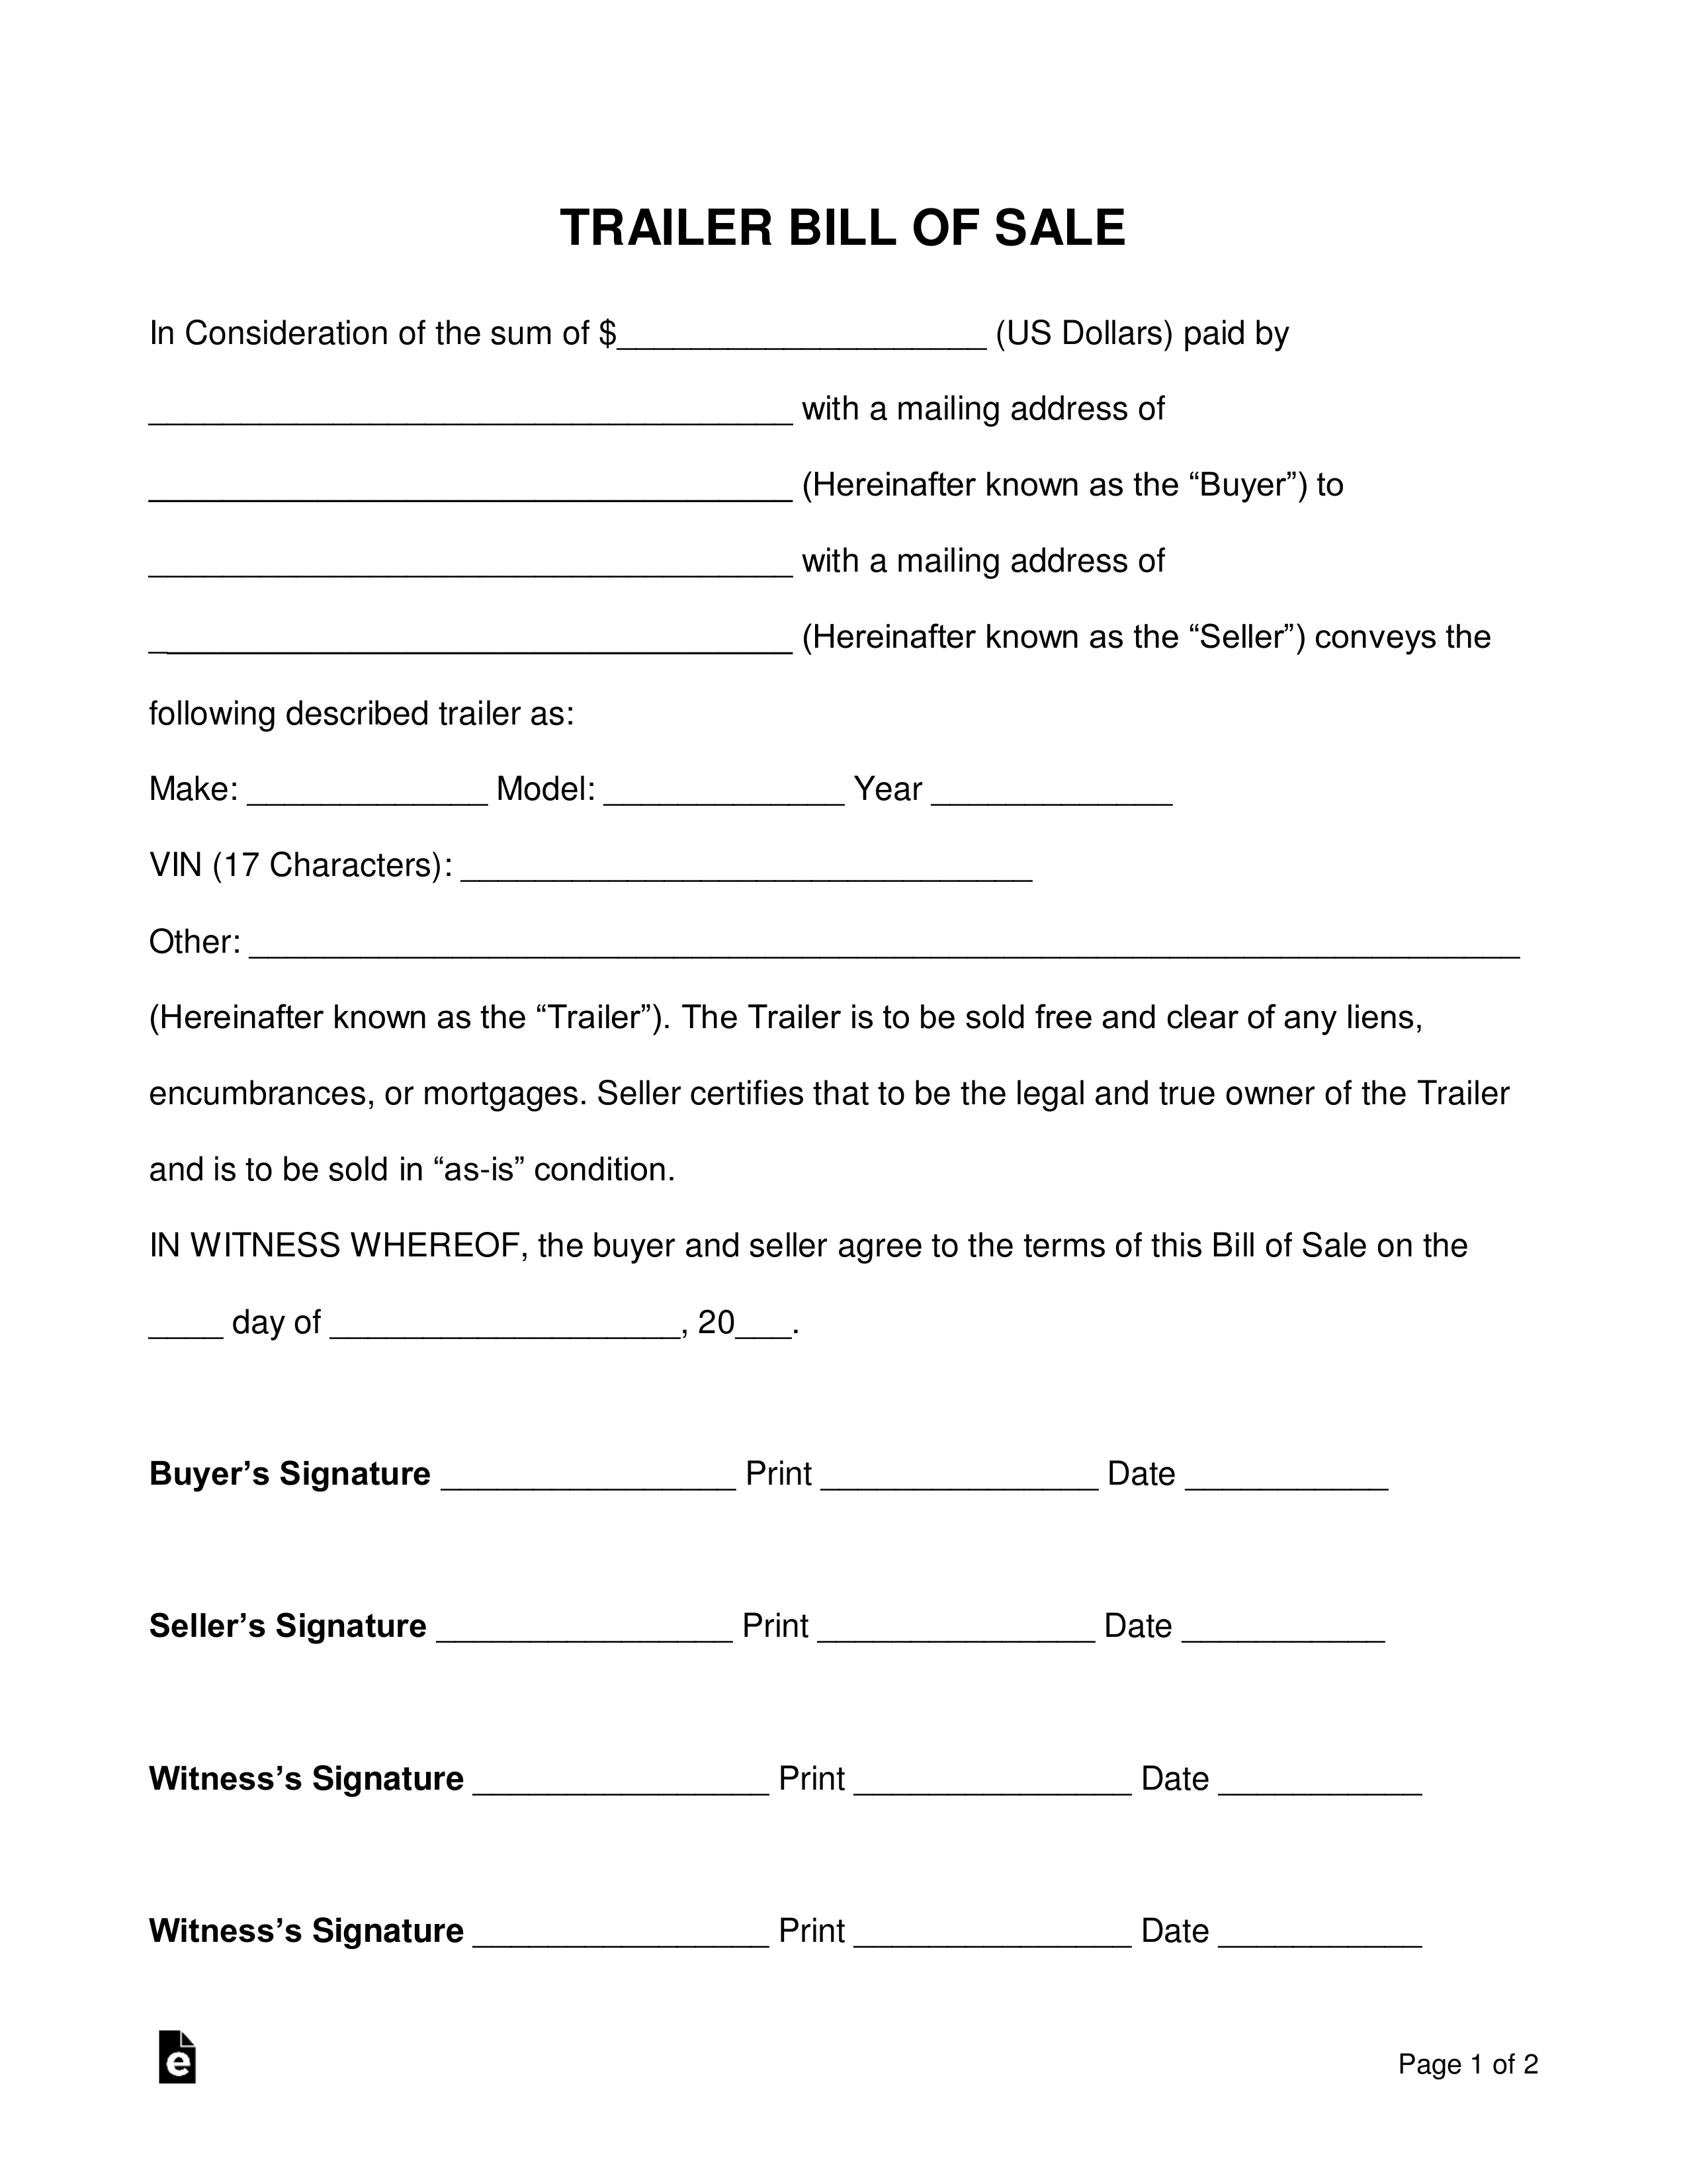 free trailer bill of sale form word pdf eforms free 53 foot trailer rental invoice template